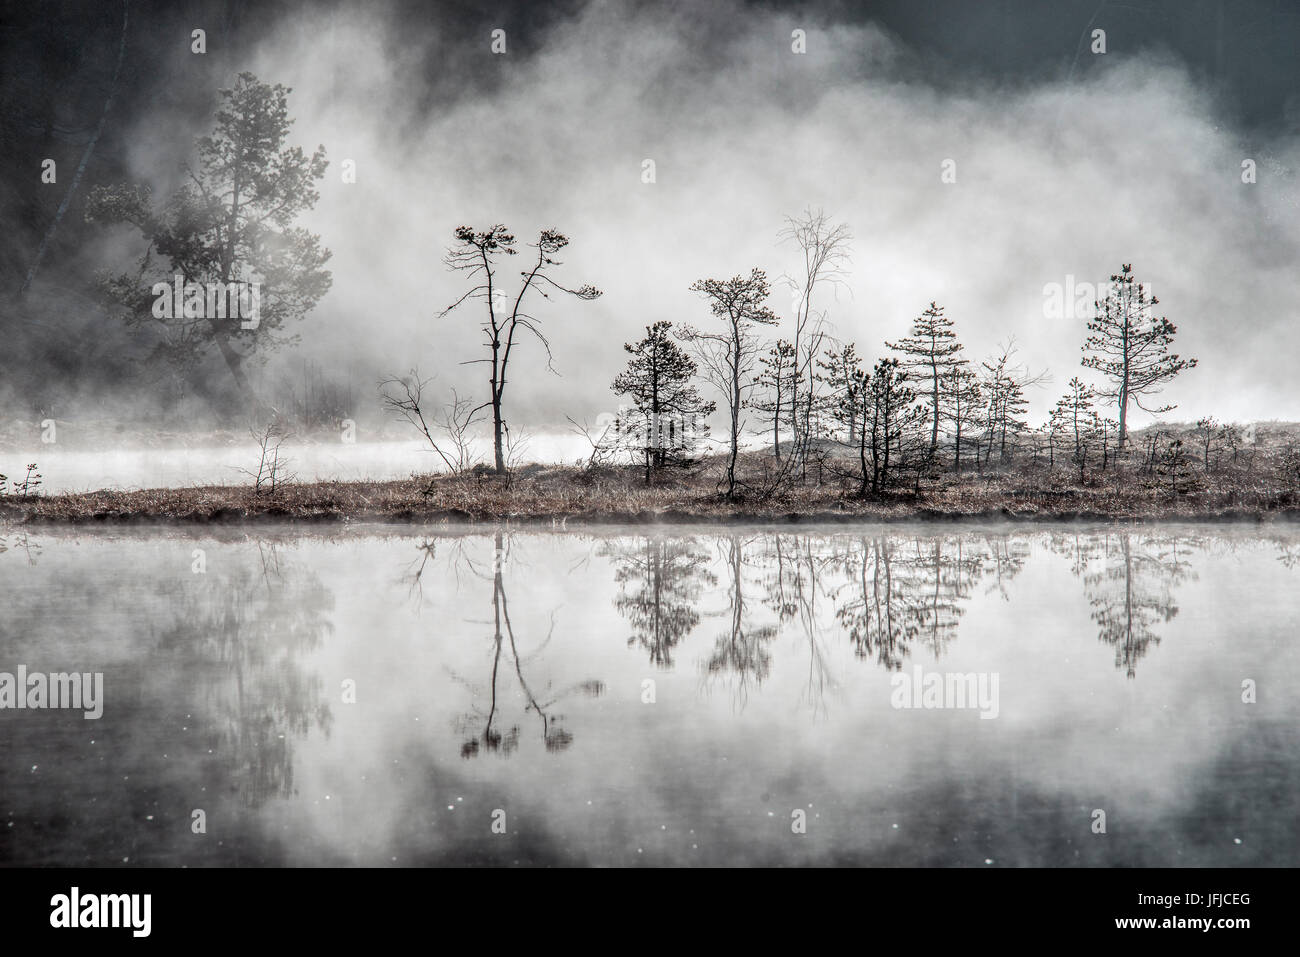 Typical mists of spring at Pian di Gembro, Aprica, Valcamonica, Valtellina, Lombardy, Italy, Europe - Stock Image